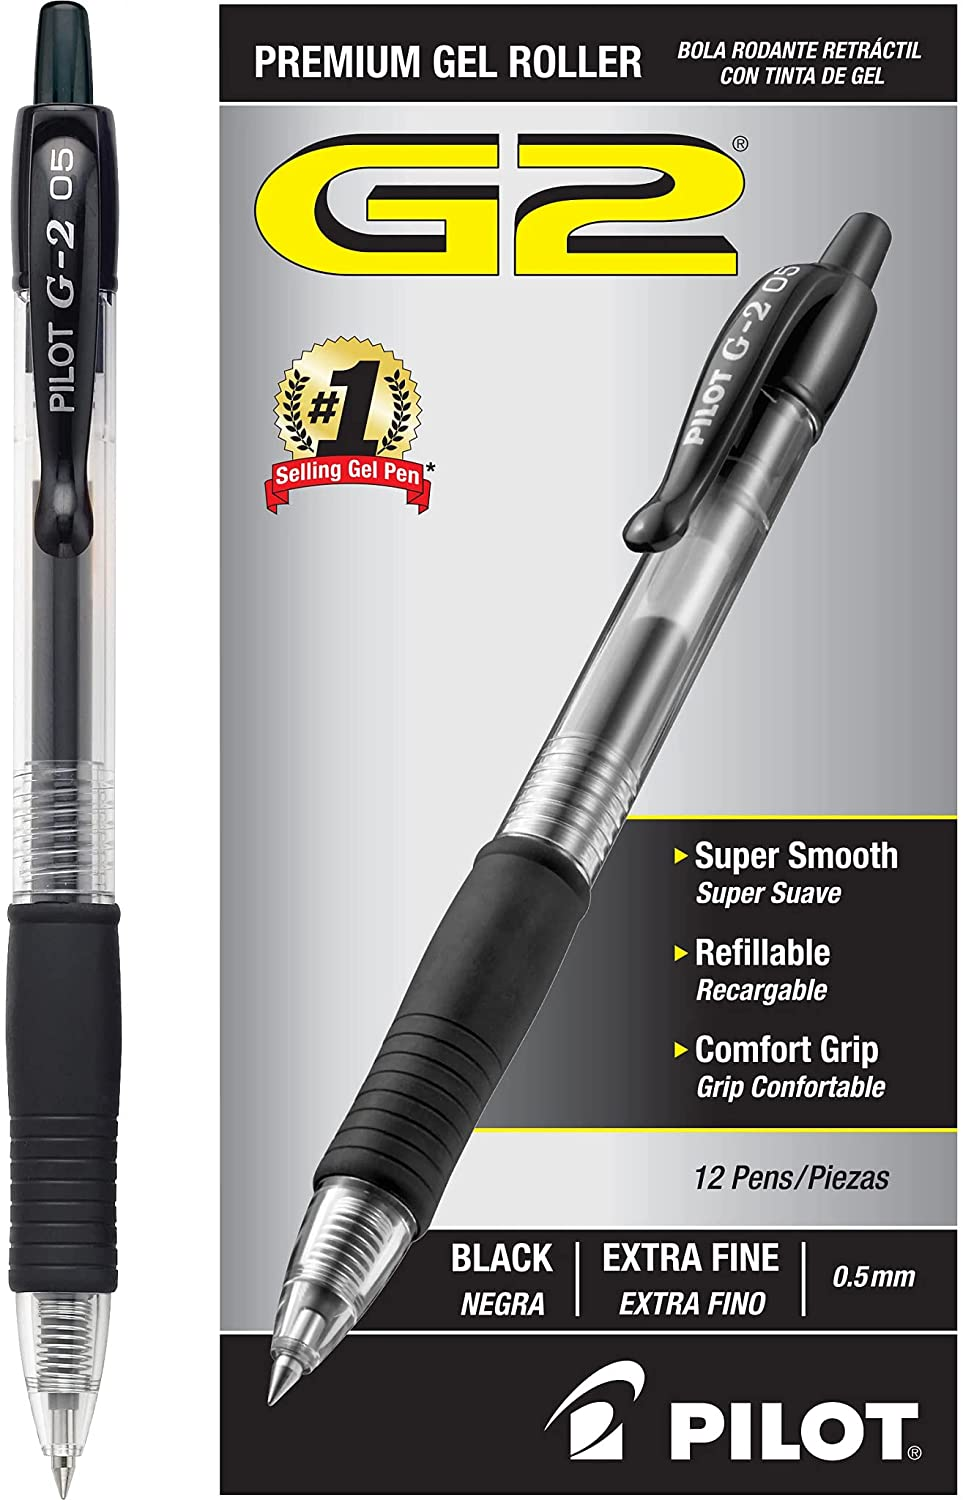 PILOT G2 Premium Refillable Retractable Pens Rolling Gel Cheap Indianapolis Mall super special price Ball